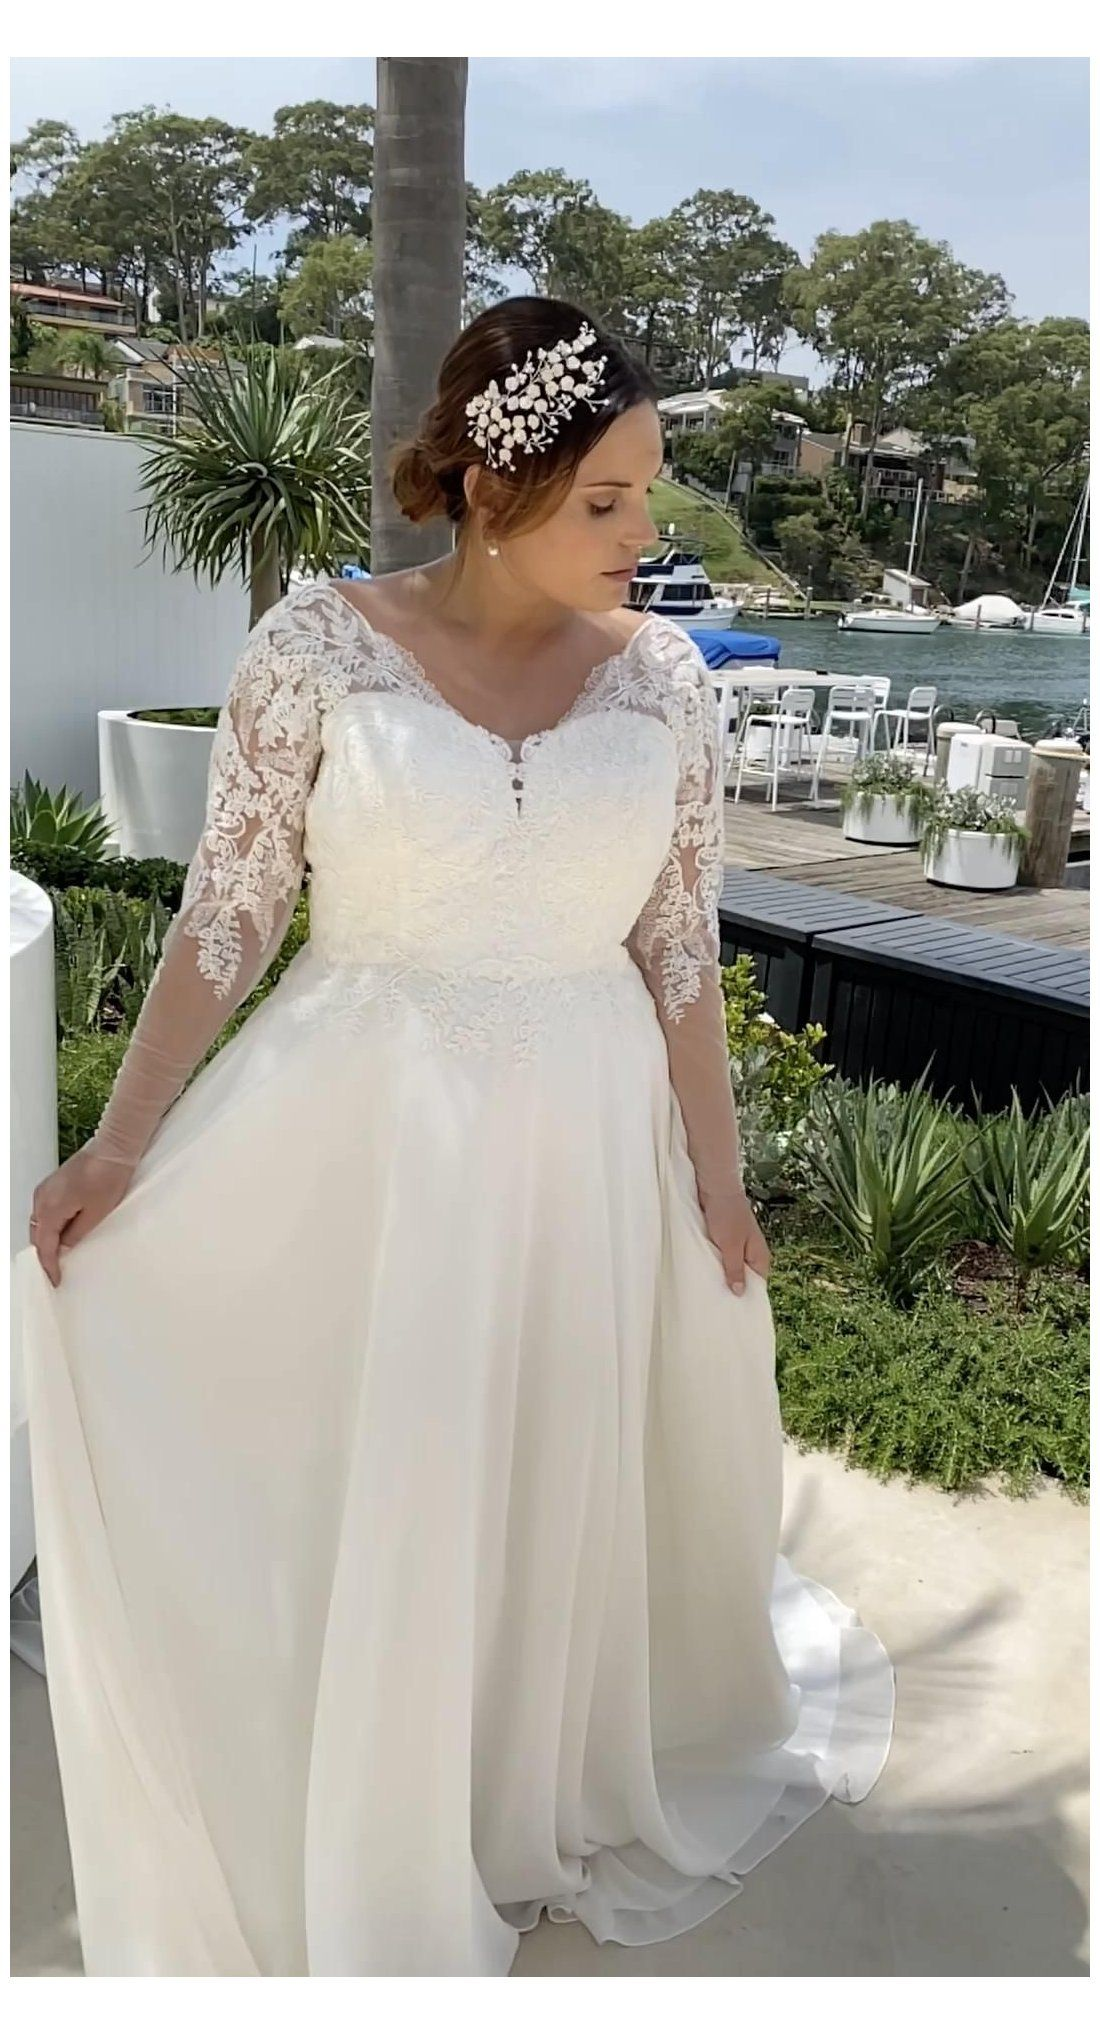 Lace Sleeve Plus Size Wedding Dress Dominique Aline Wedding Dr In 2021 Plus Size Wedding Dresses With Sleeves Plus Wedding Dresses Lace Wedding Dress With Sleeves [ 2034 x 1100 Pixel ]